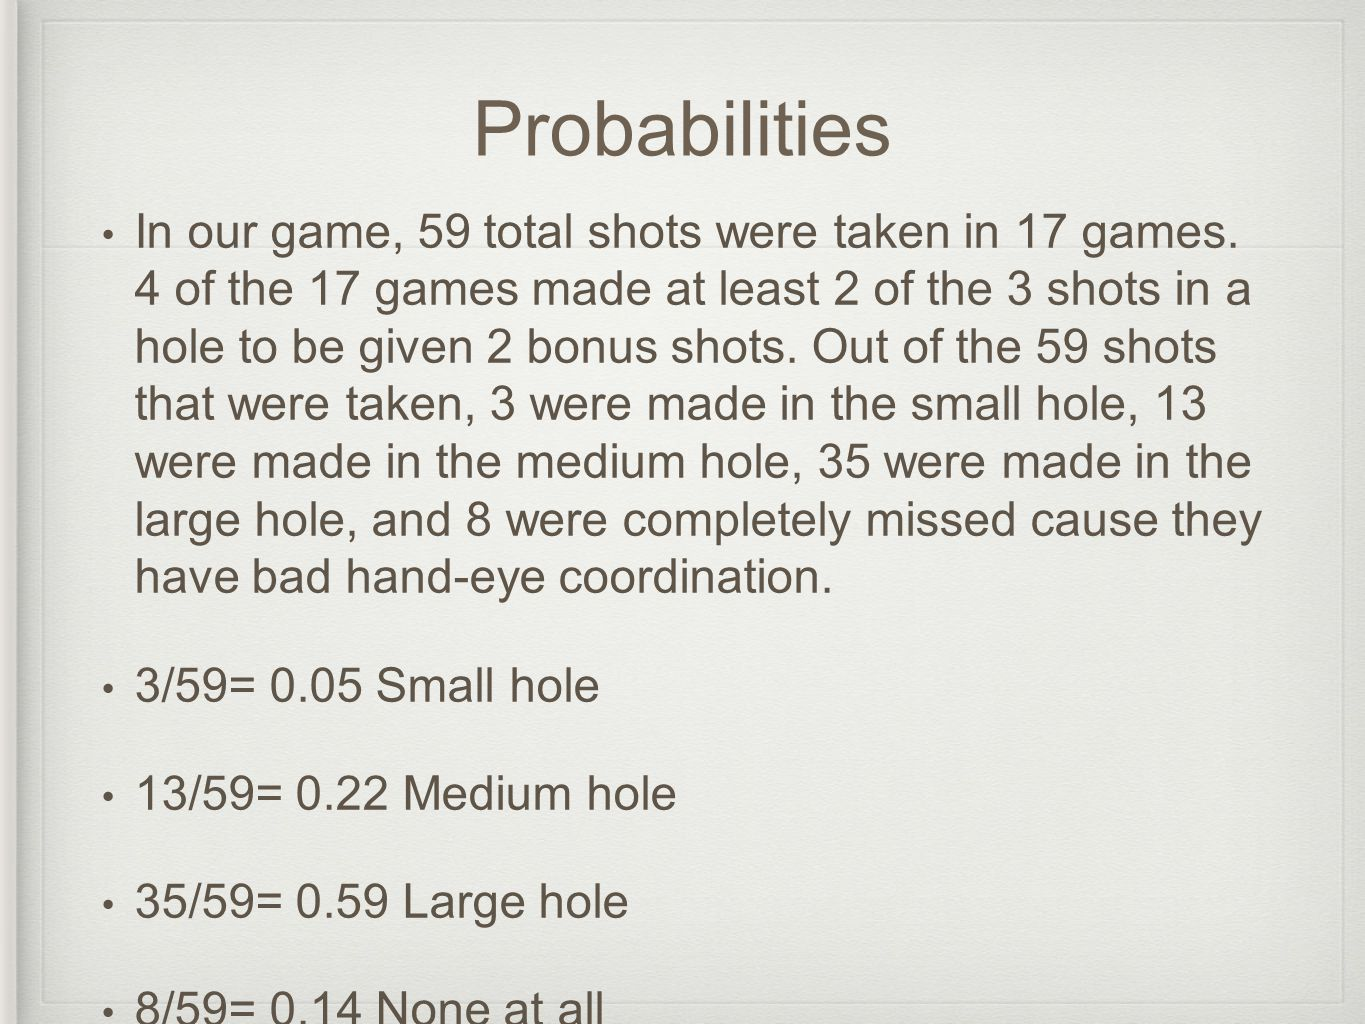 Probabilities In our game, 59 total shots were taken in 17 games.